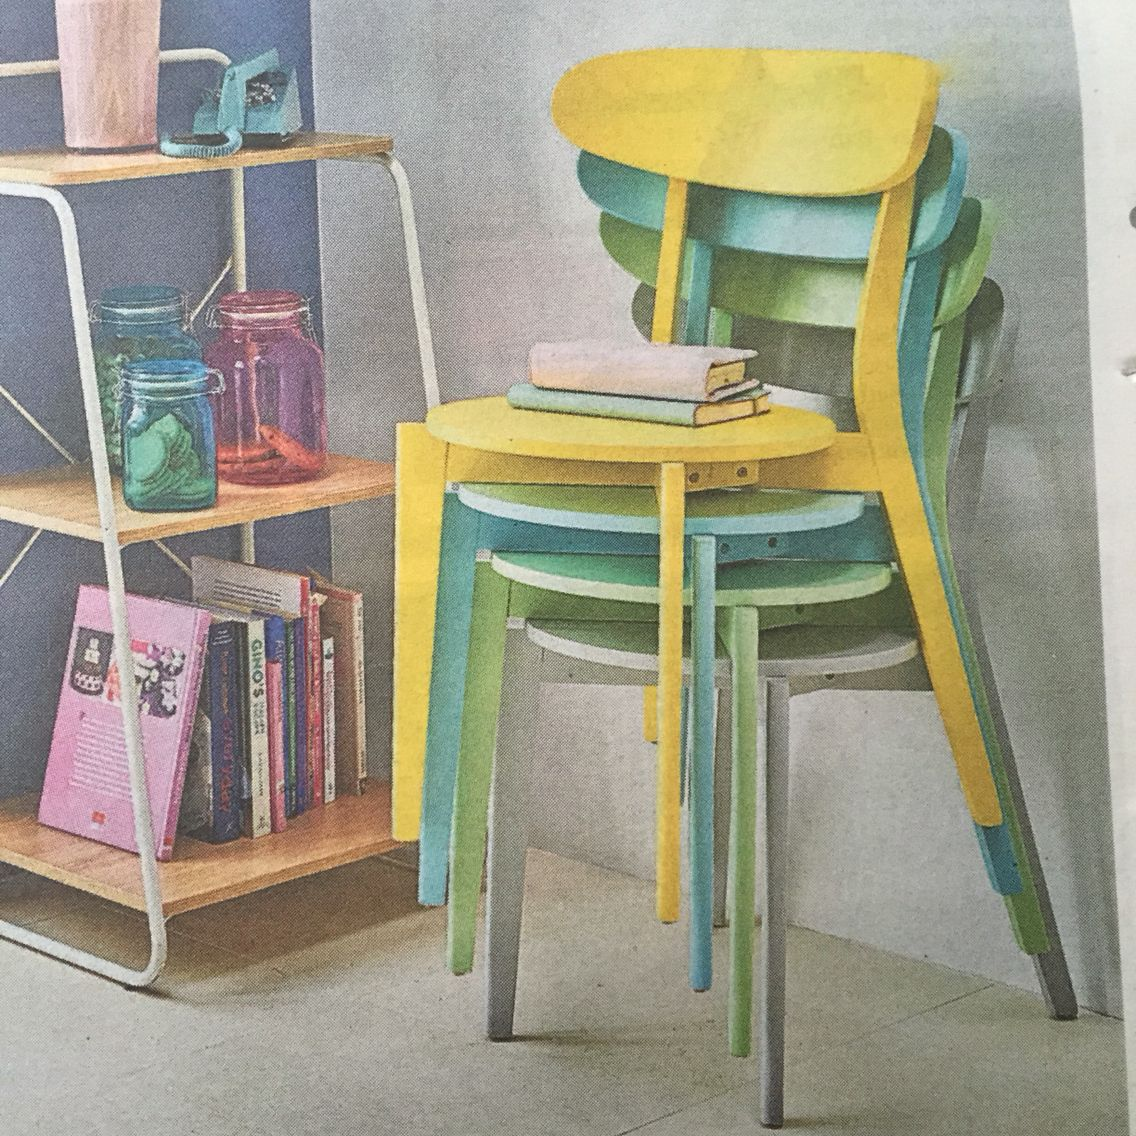 Tesco stacking chairs - £11 each (available from September 11